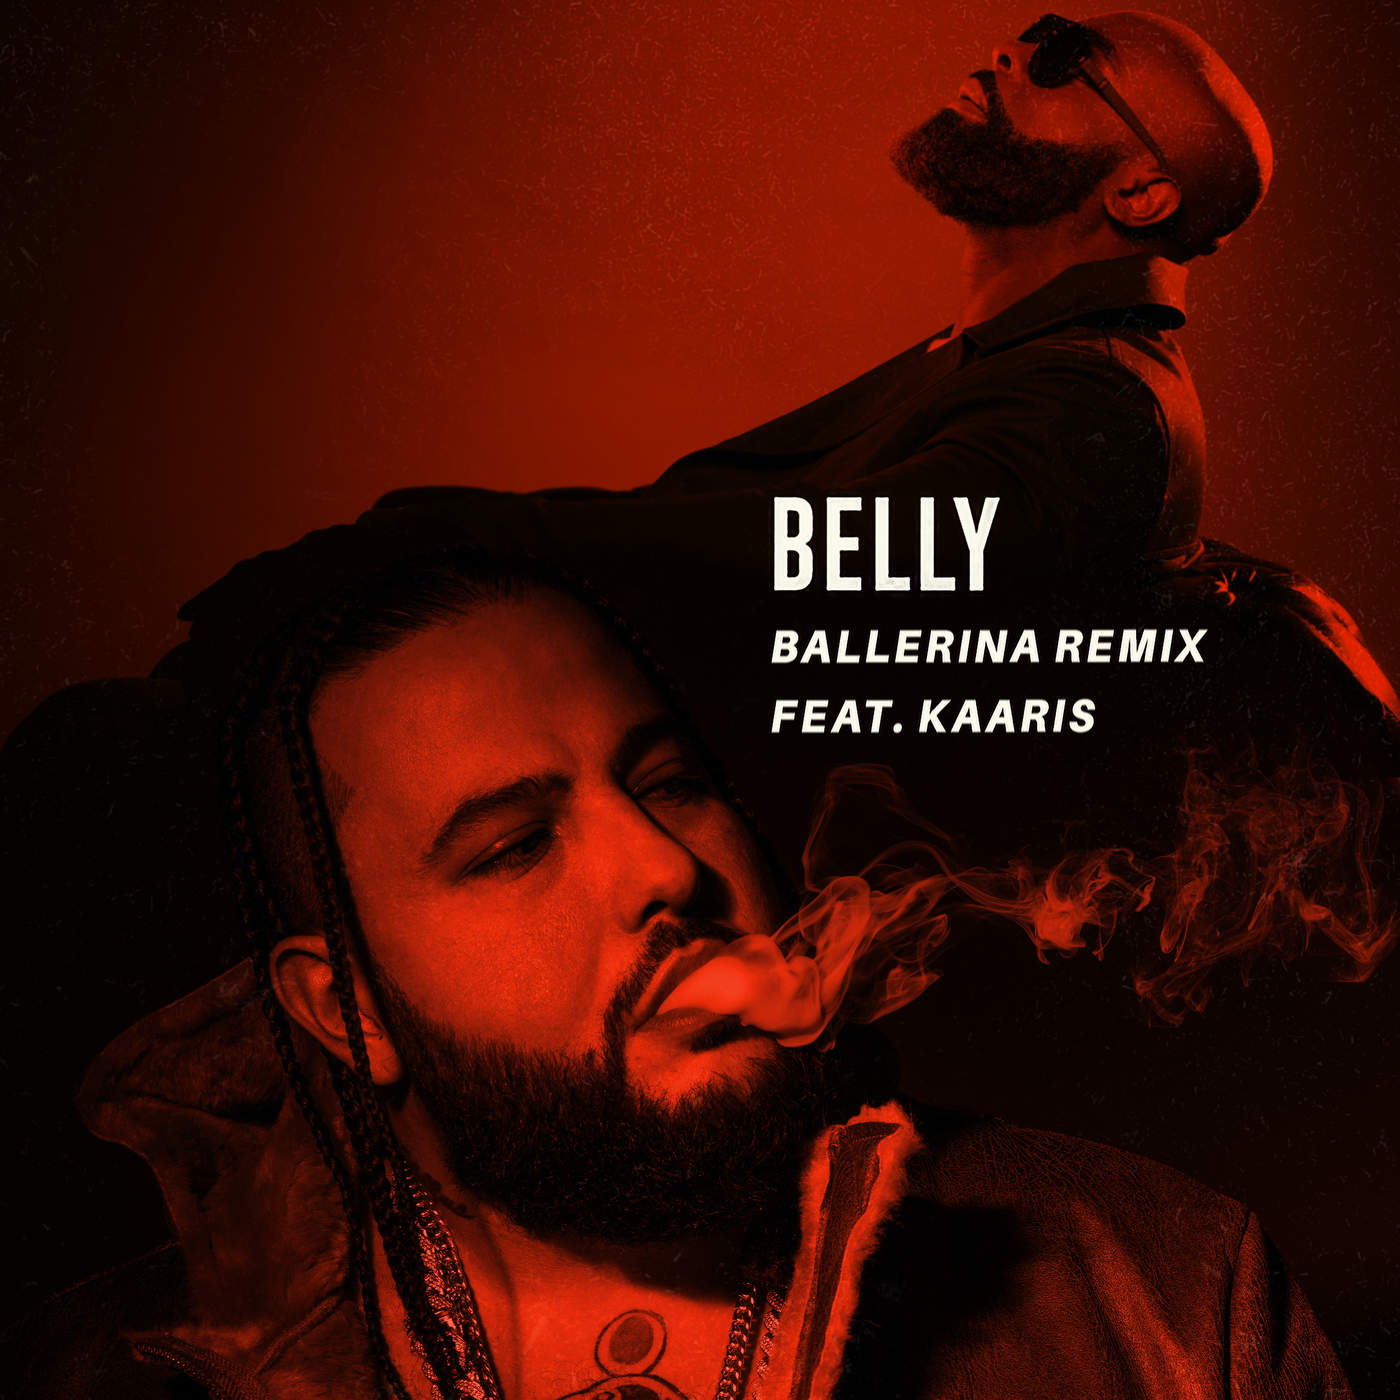 Belly - Ballerina (feat. Kaaris) [France Remix] - Single Cover